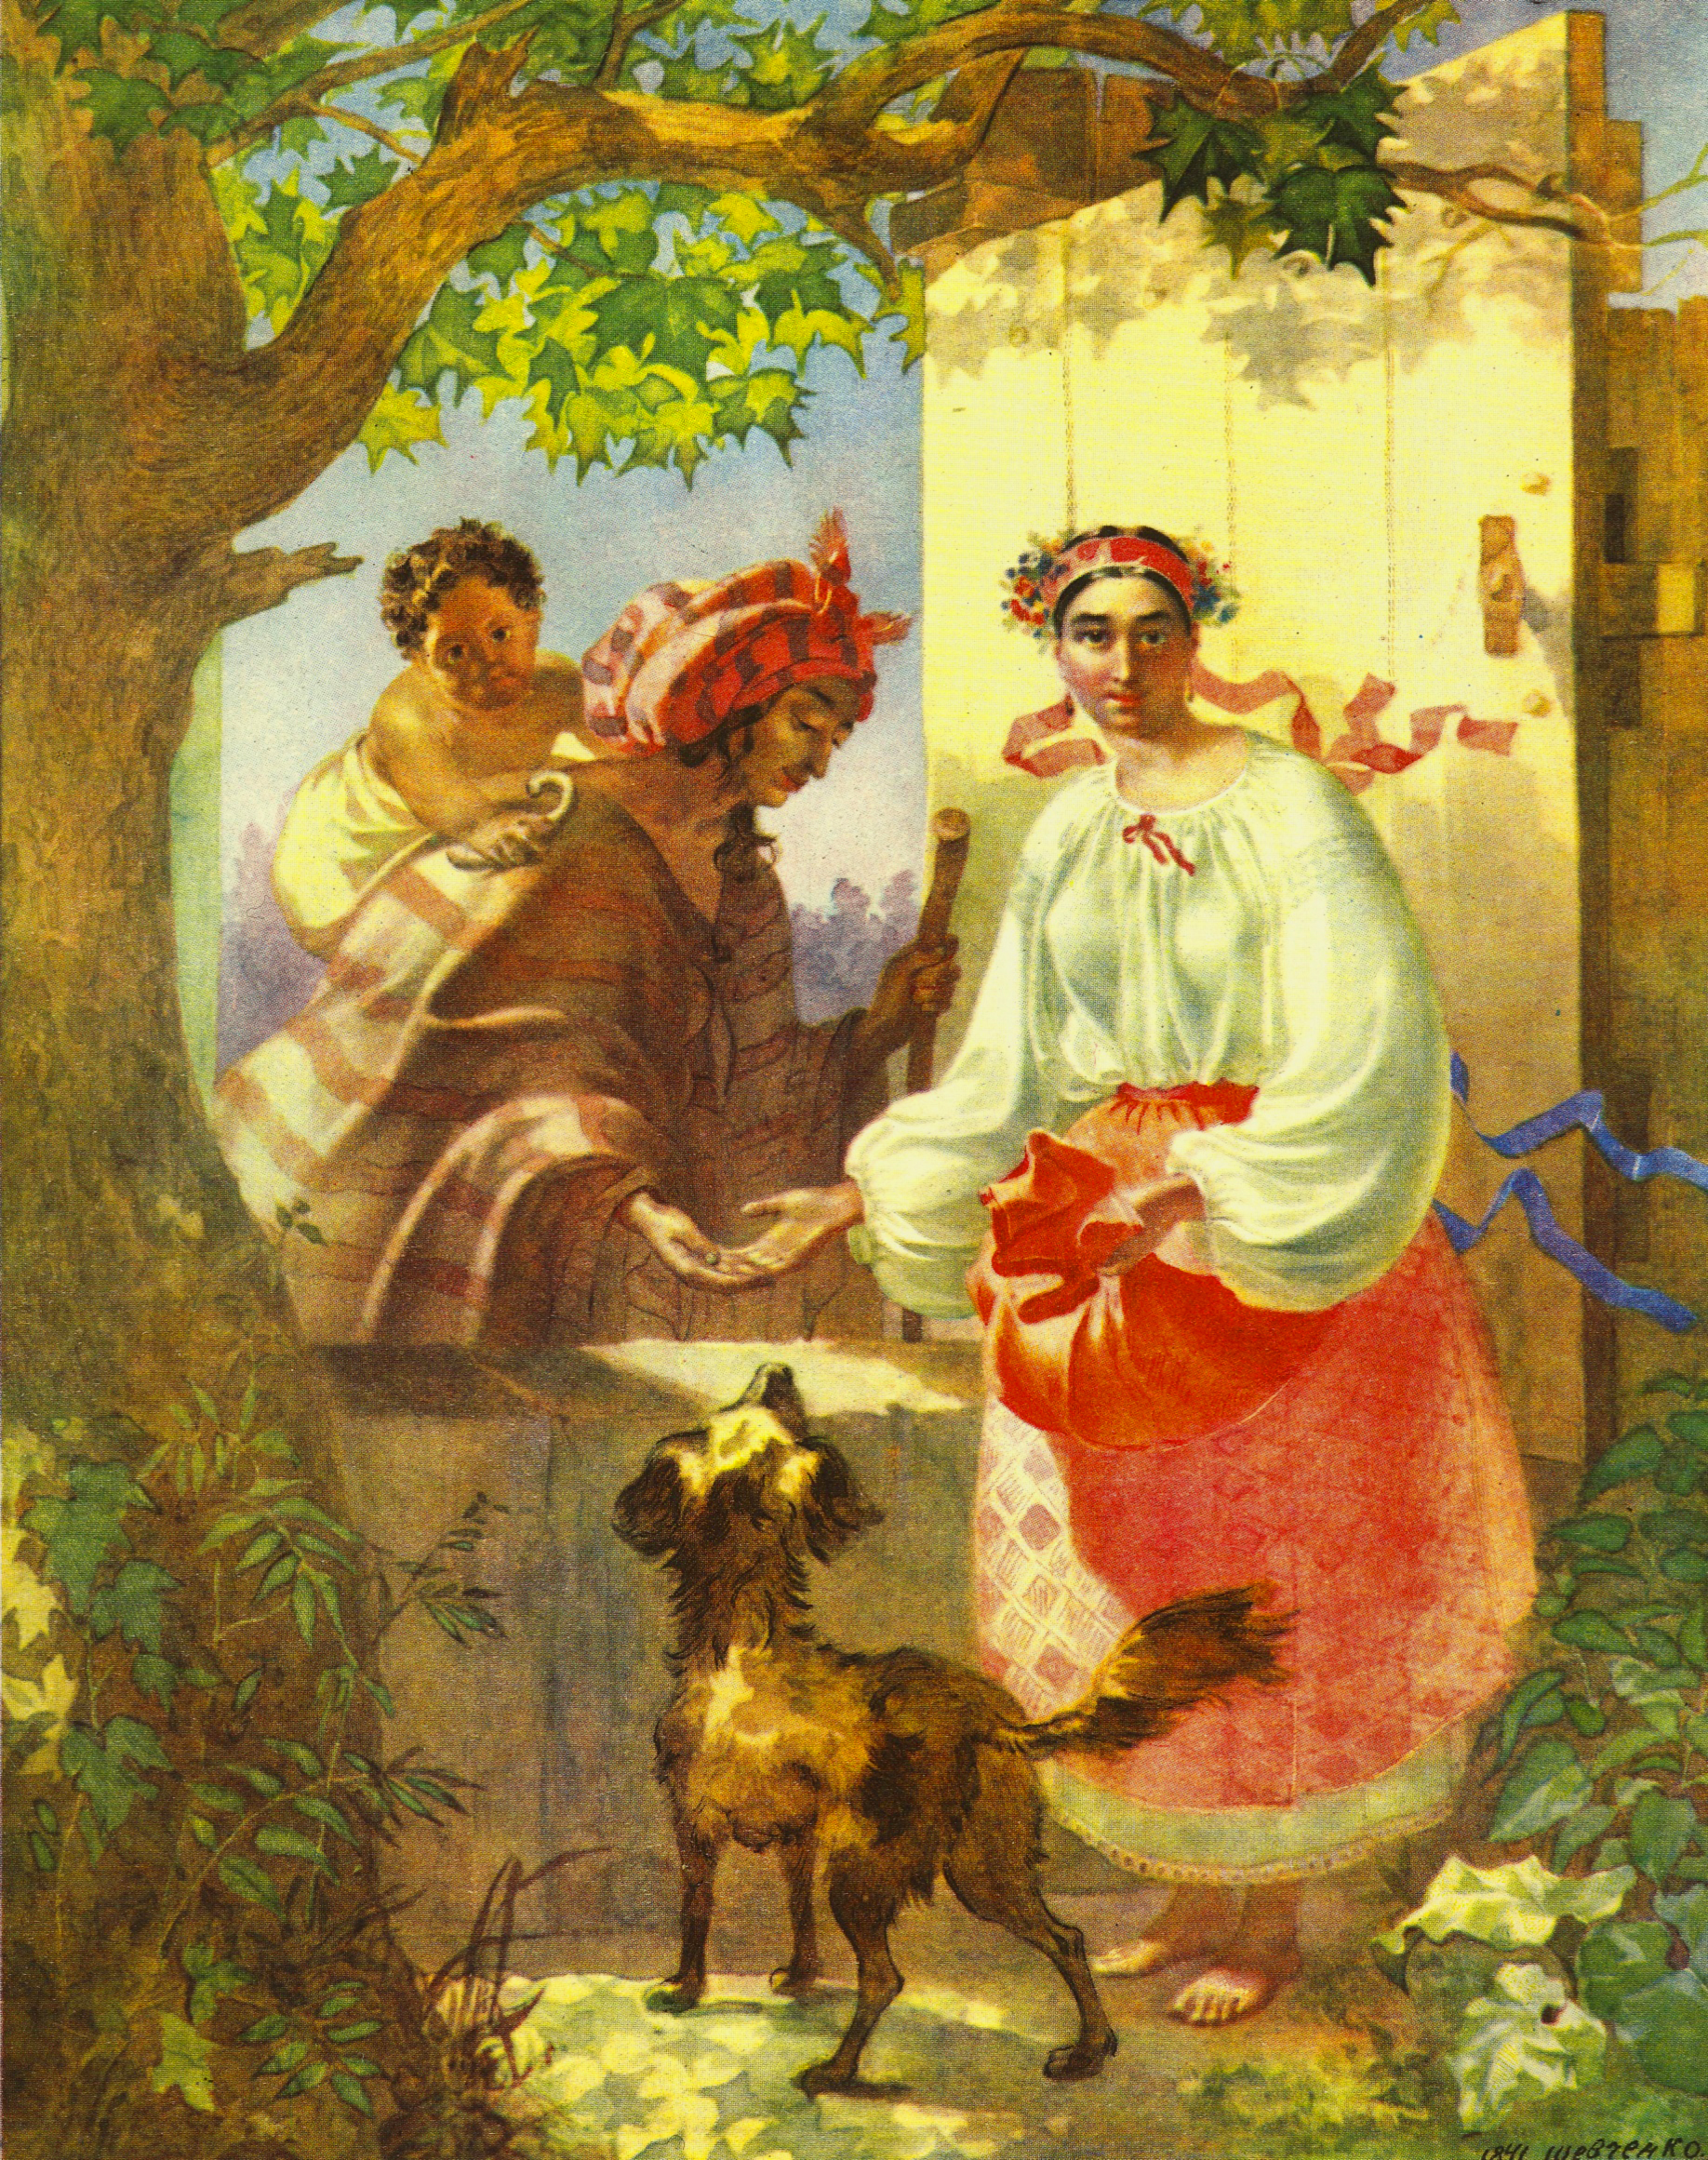 http://upload.wikimedia.org/wikipedia/commons/2/2d/Gipsy_Fortune_Teller_by_Taras_Shevchenko.jpg